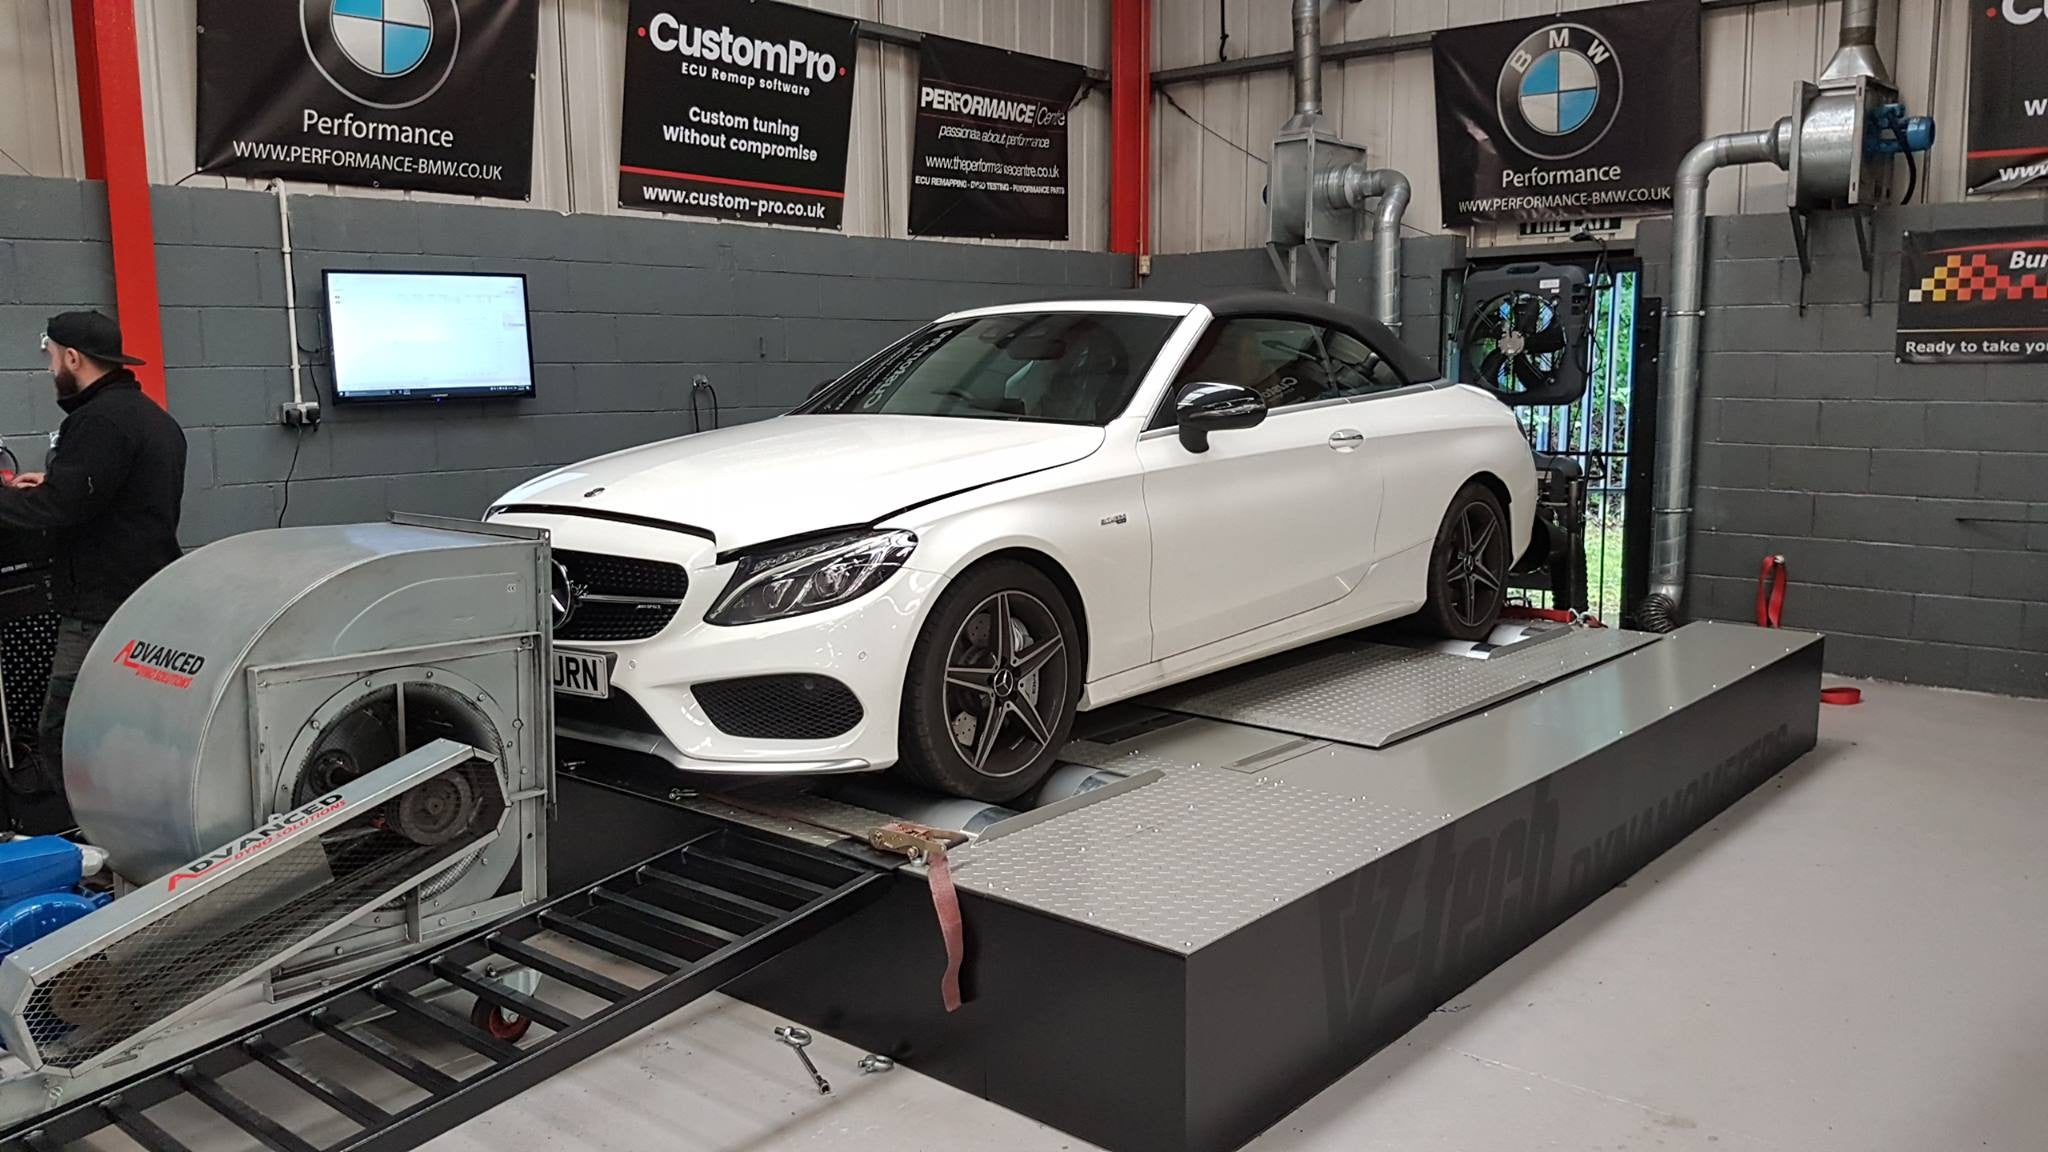 Mercedes C43 AMG - CustomPro remap